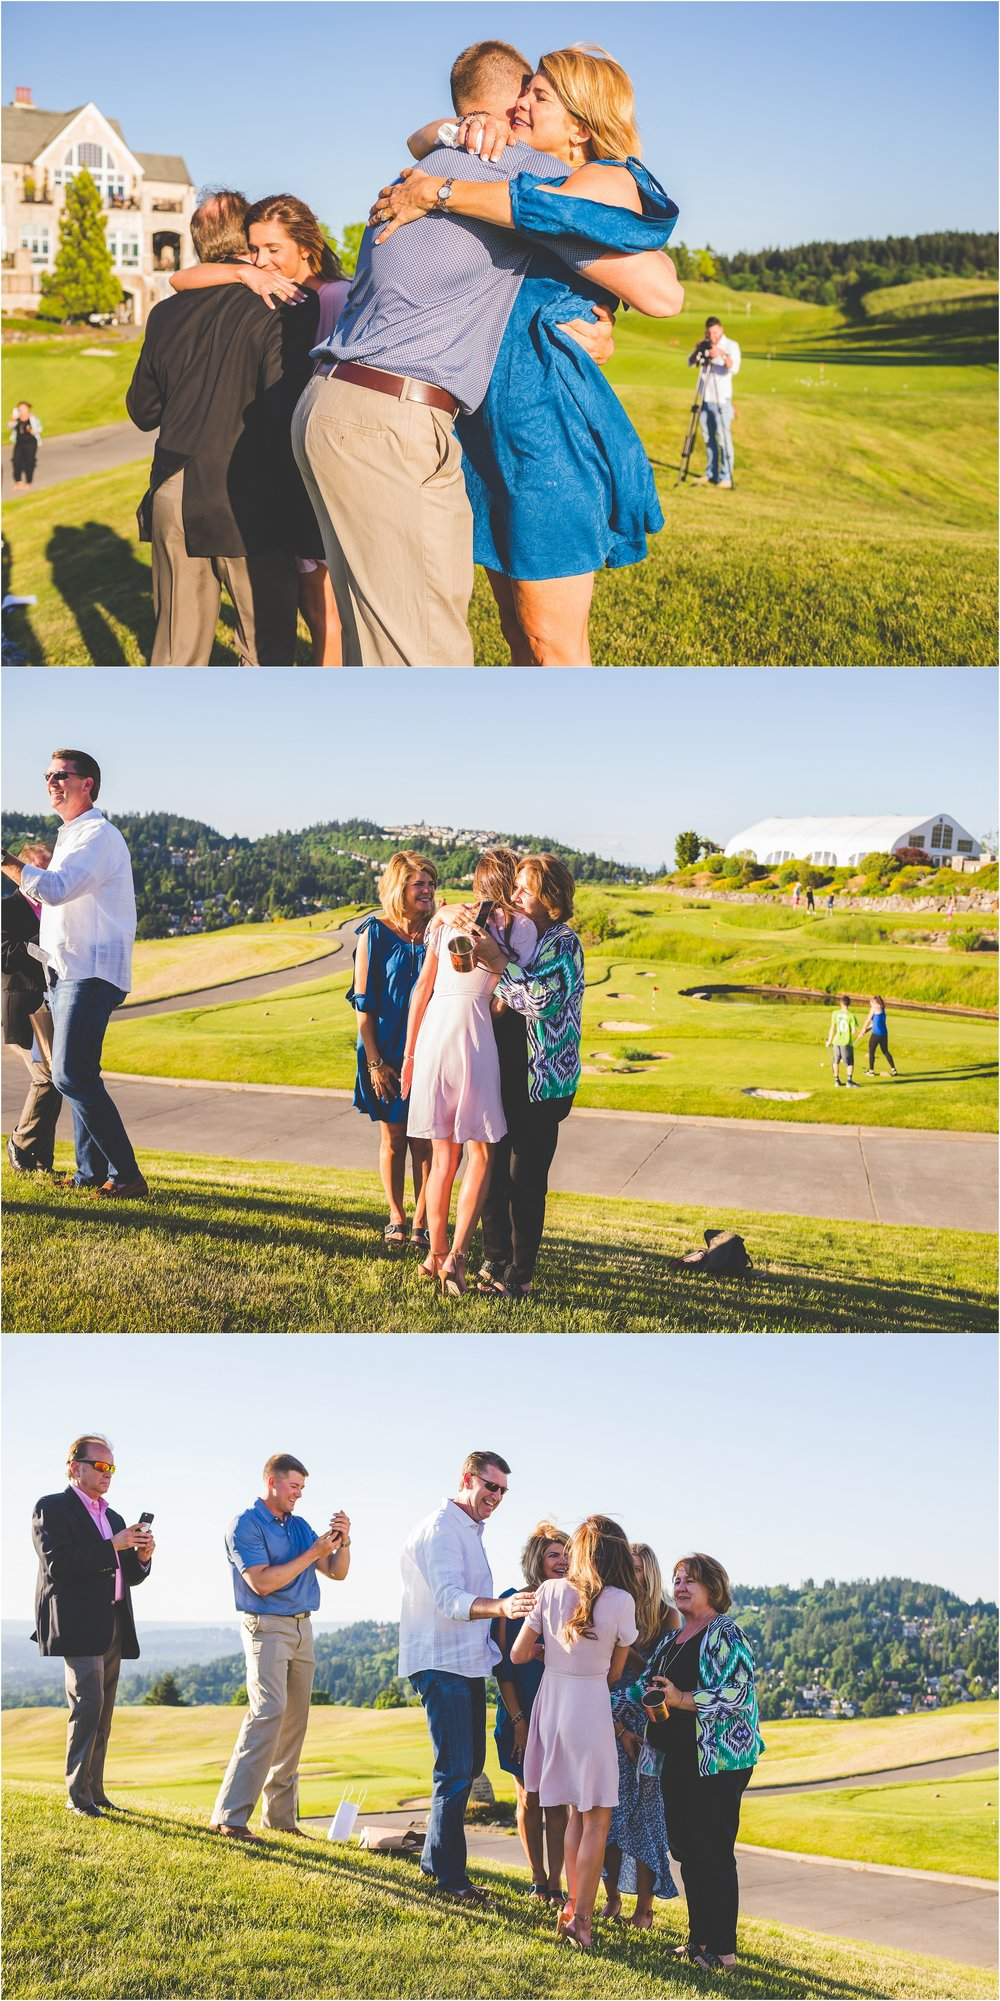 newcastle-golf-club-proposal-jannicka-mayte-seattle-washington-engagement-wedding-photographer_0013.jpg